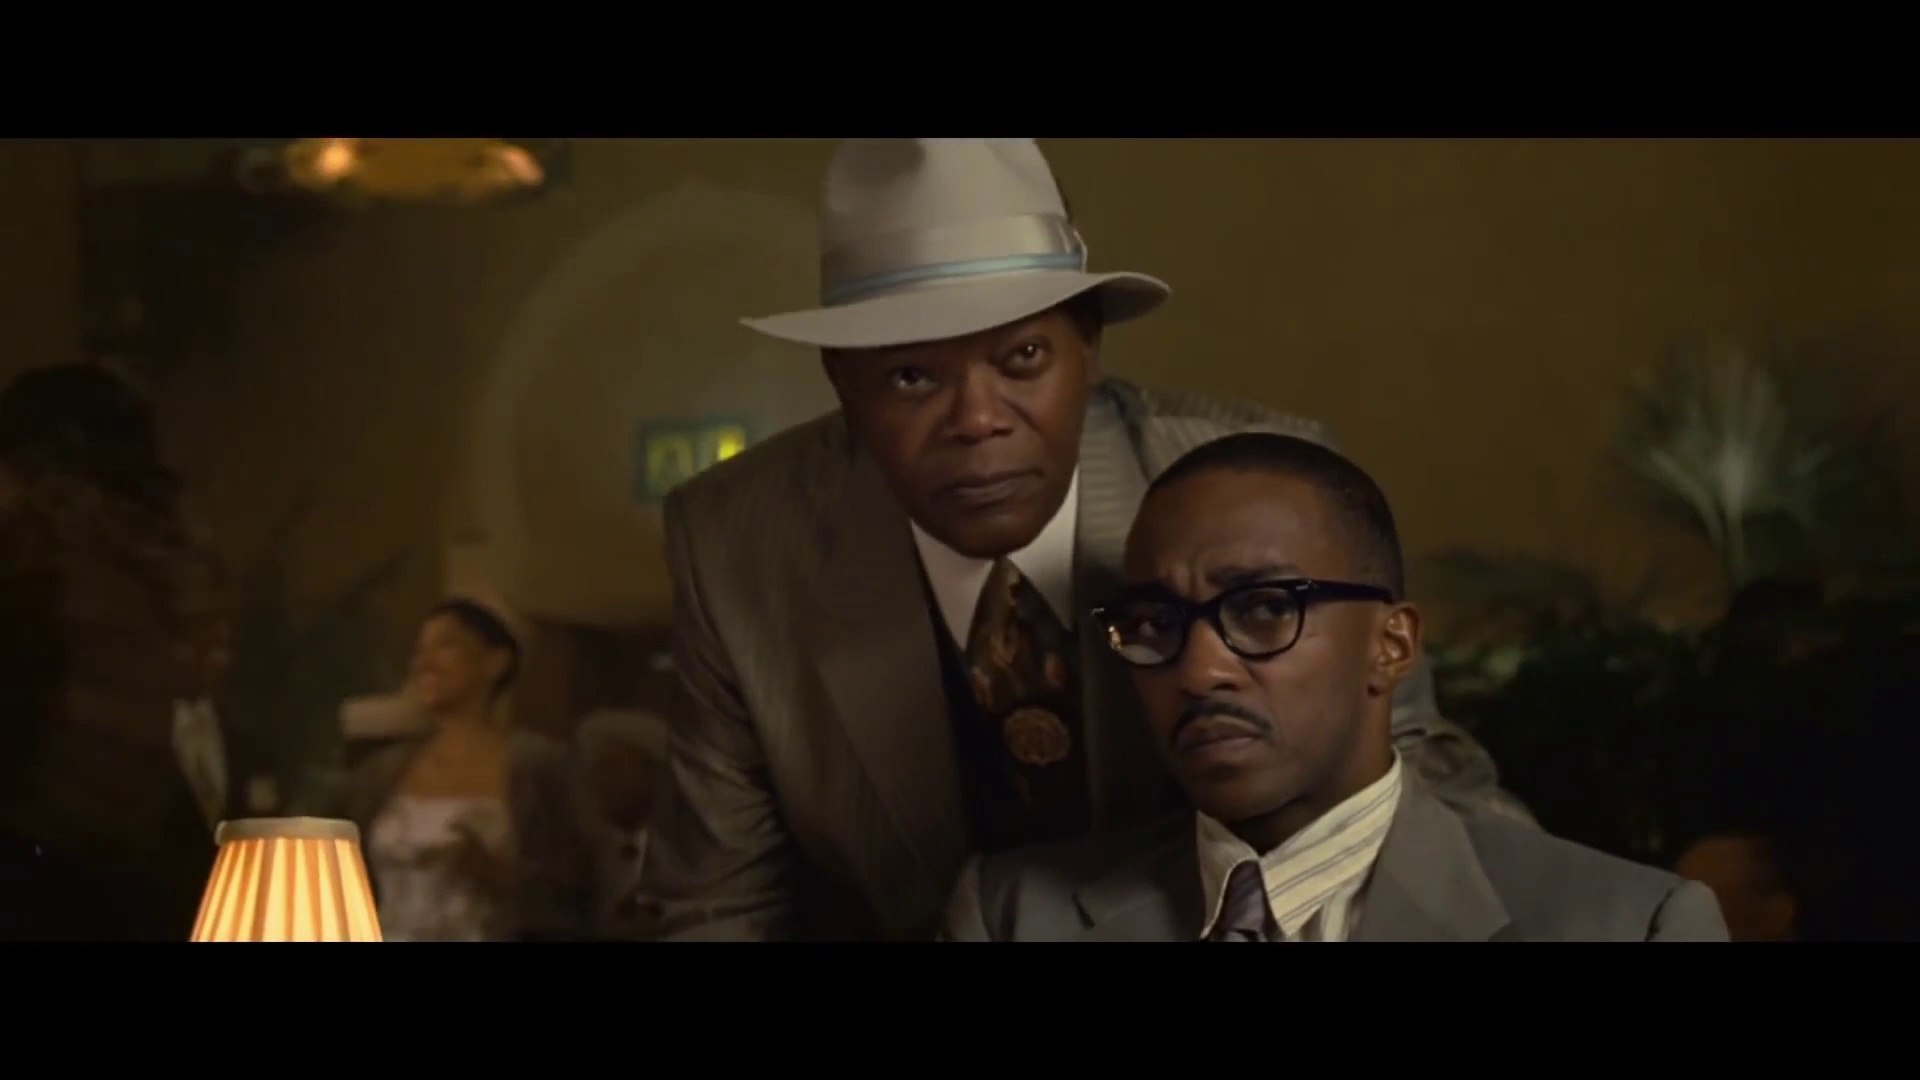 THE BANKER Trailer - Samuel L. Jackson, Anthony Mackie, Nia Long [Trailer 2019]